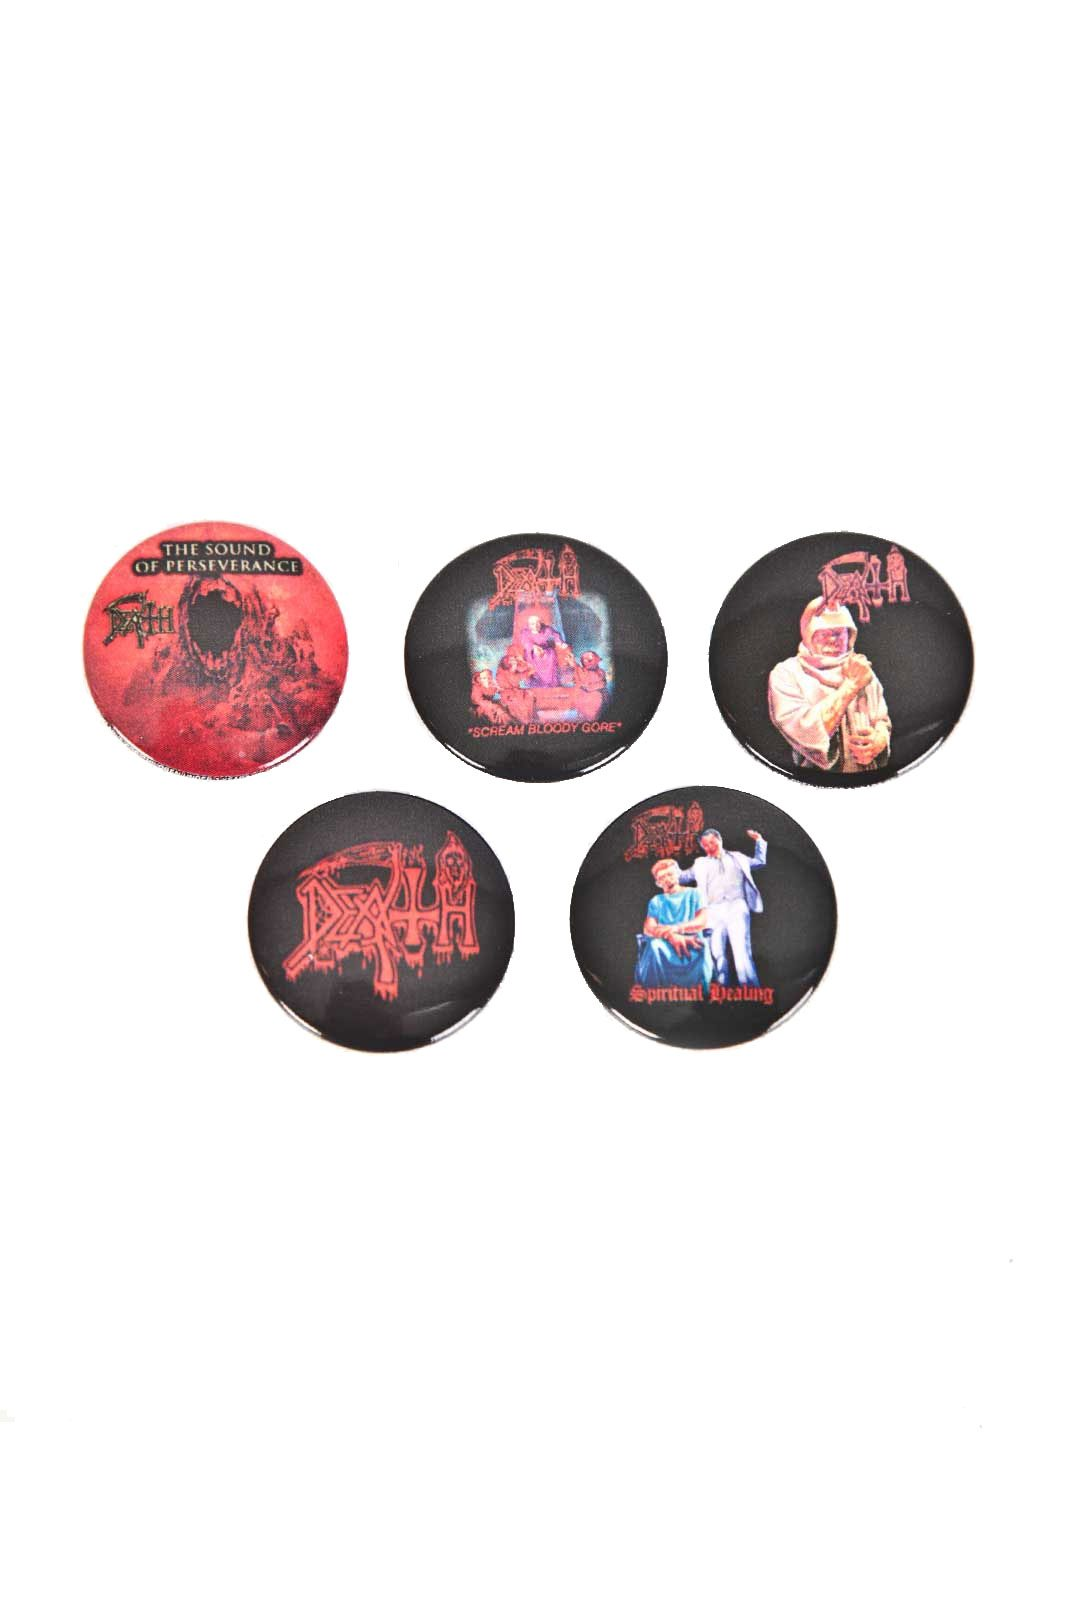 official merchandise death badge 5-pack